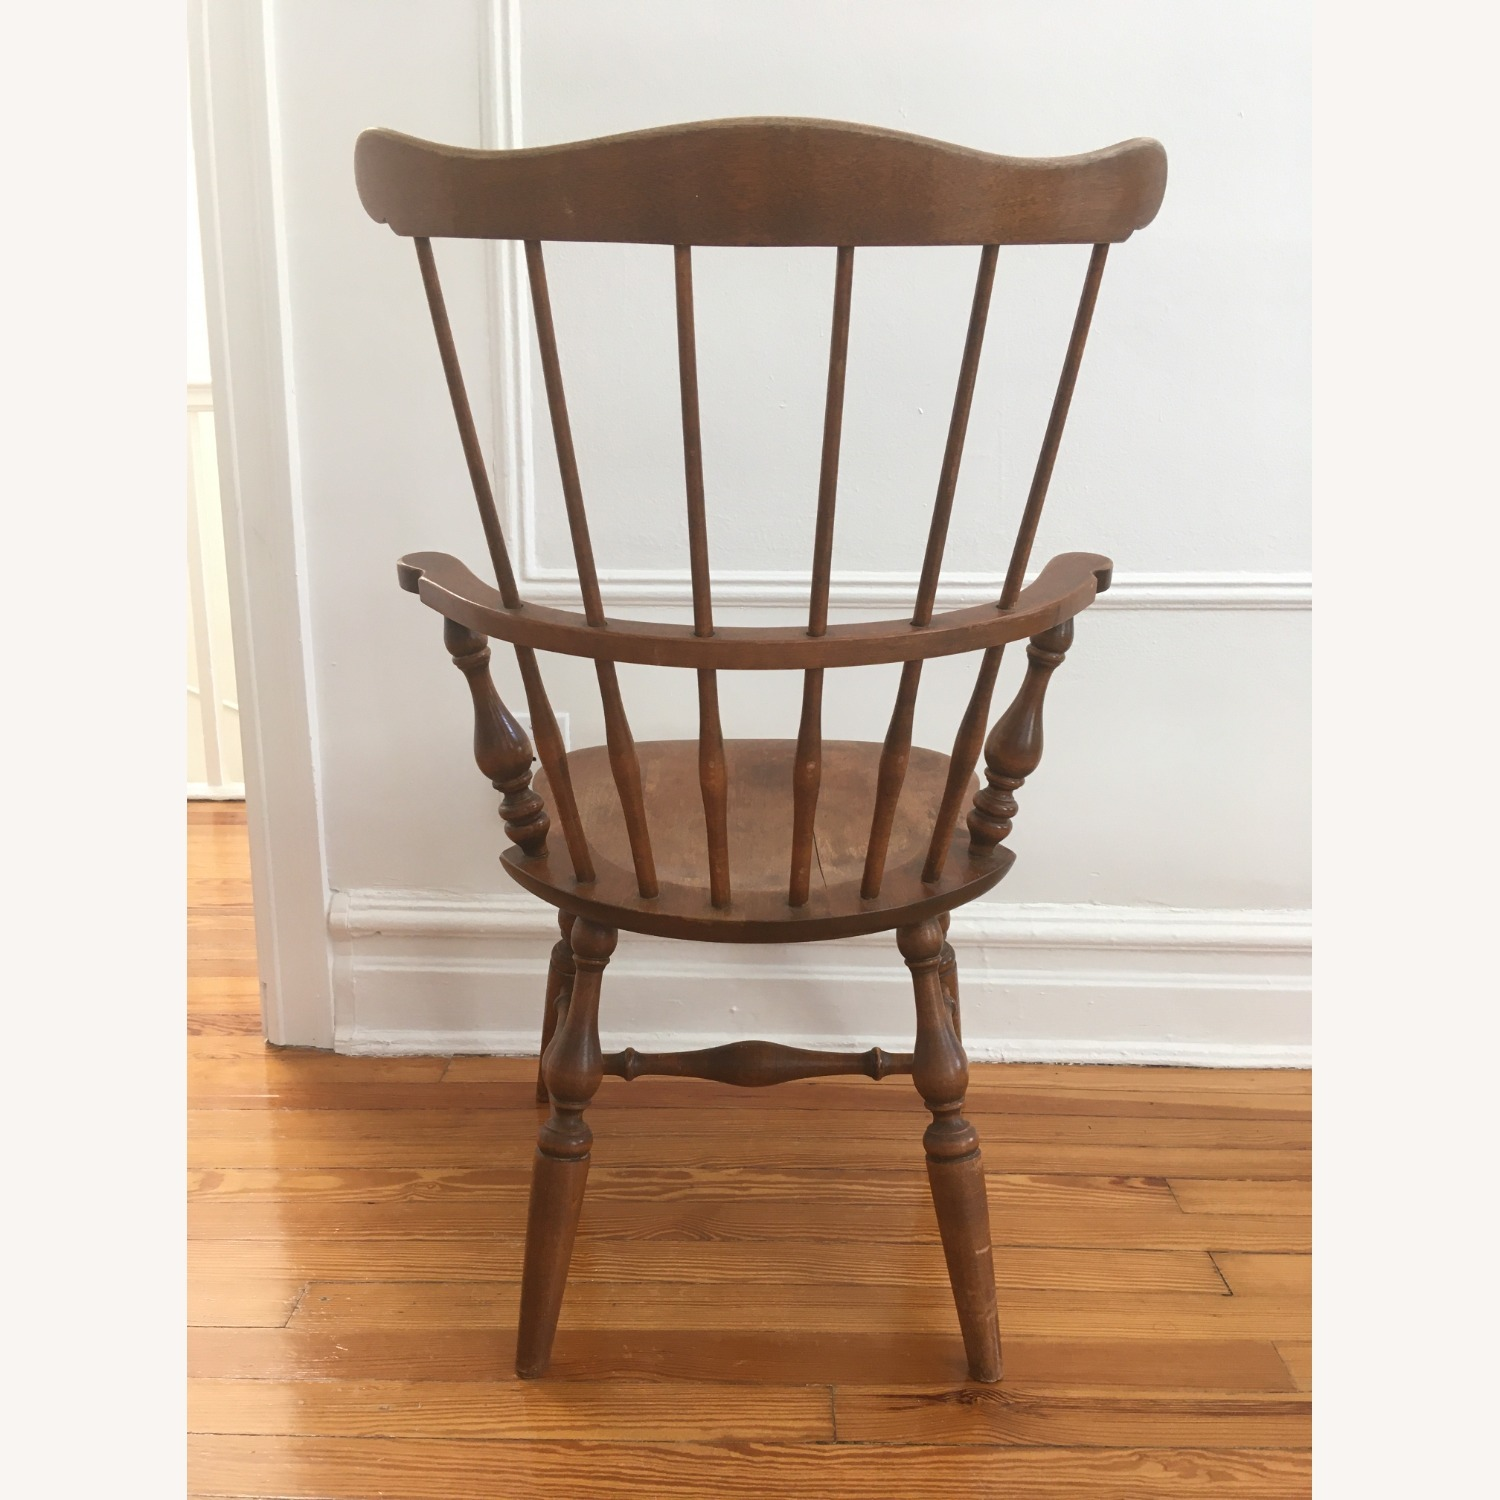 Ethan Allen Tall Comb Back Chair - image-3